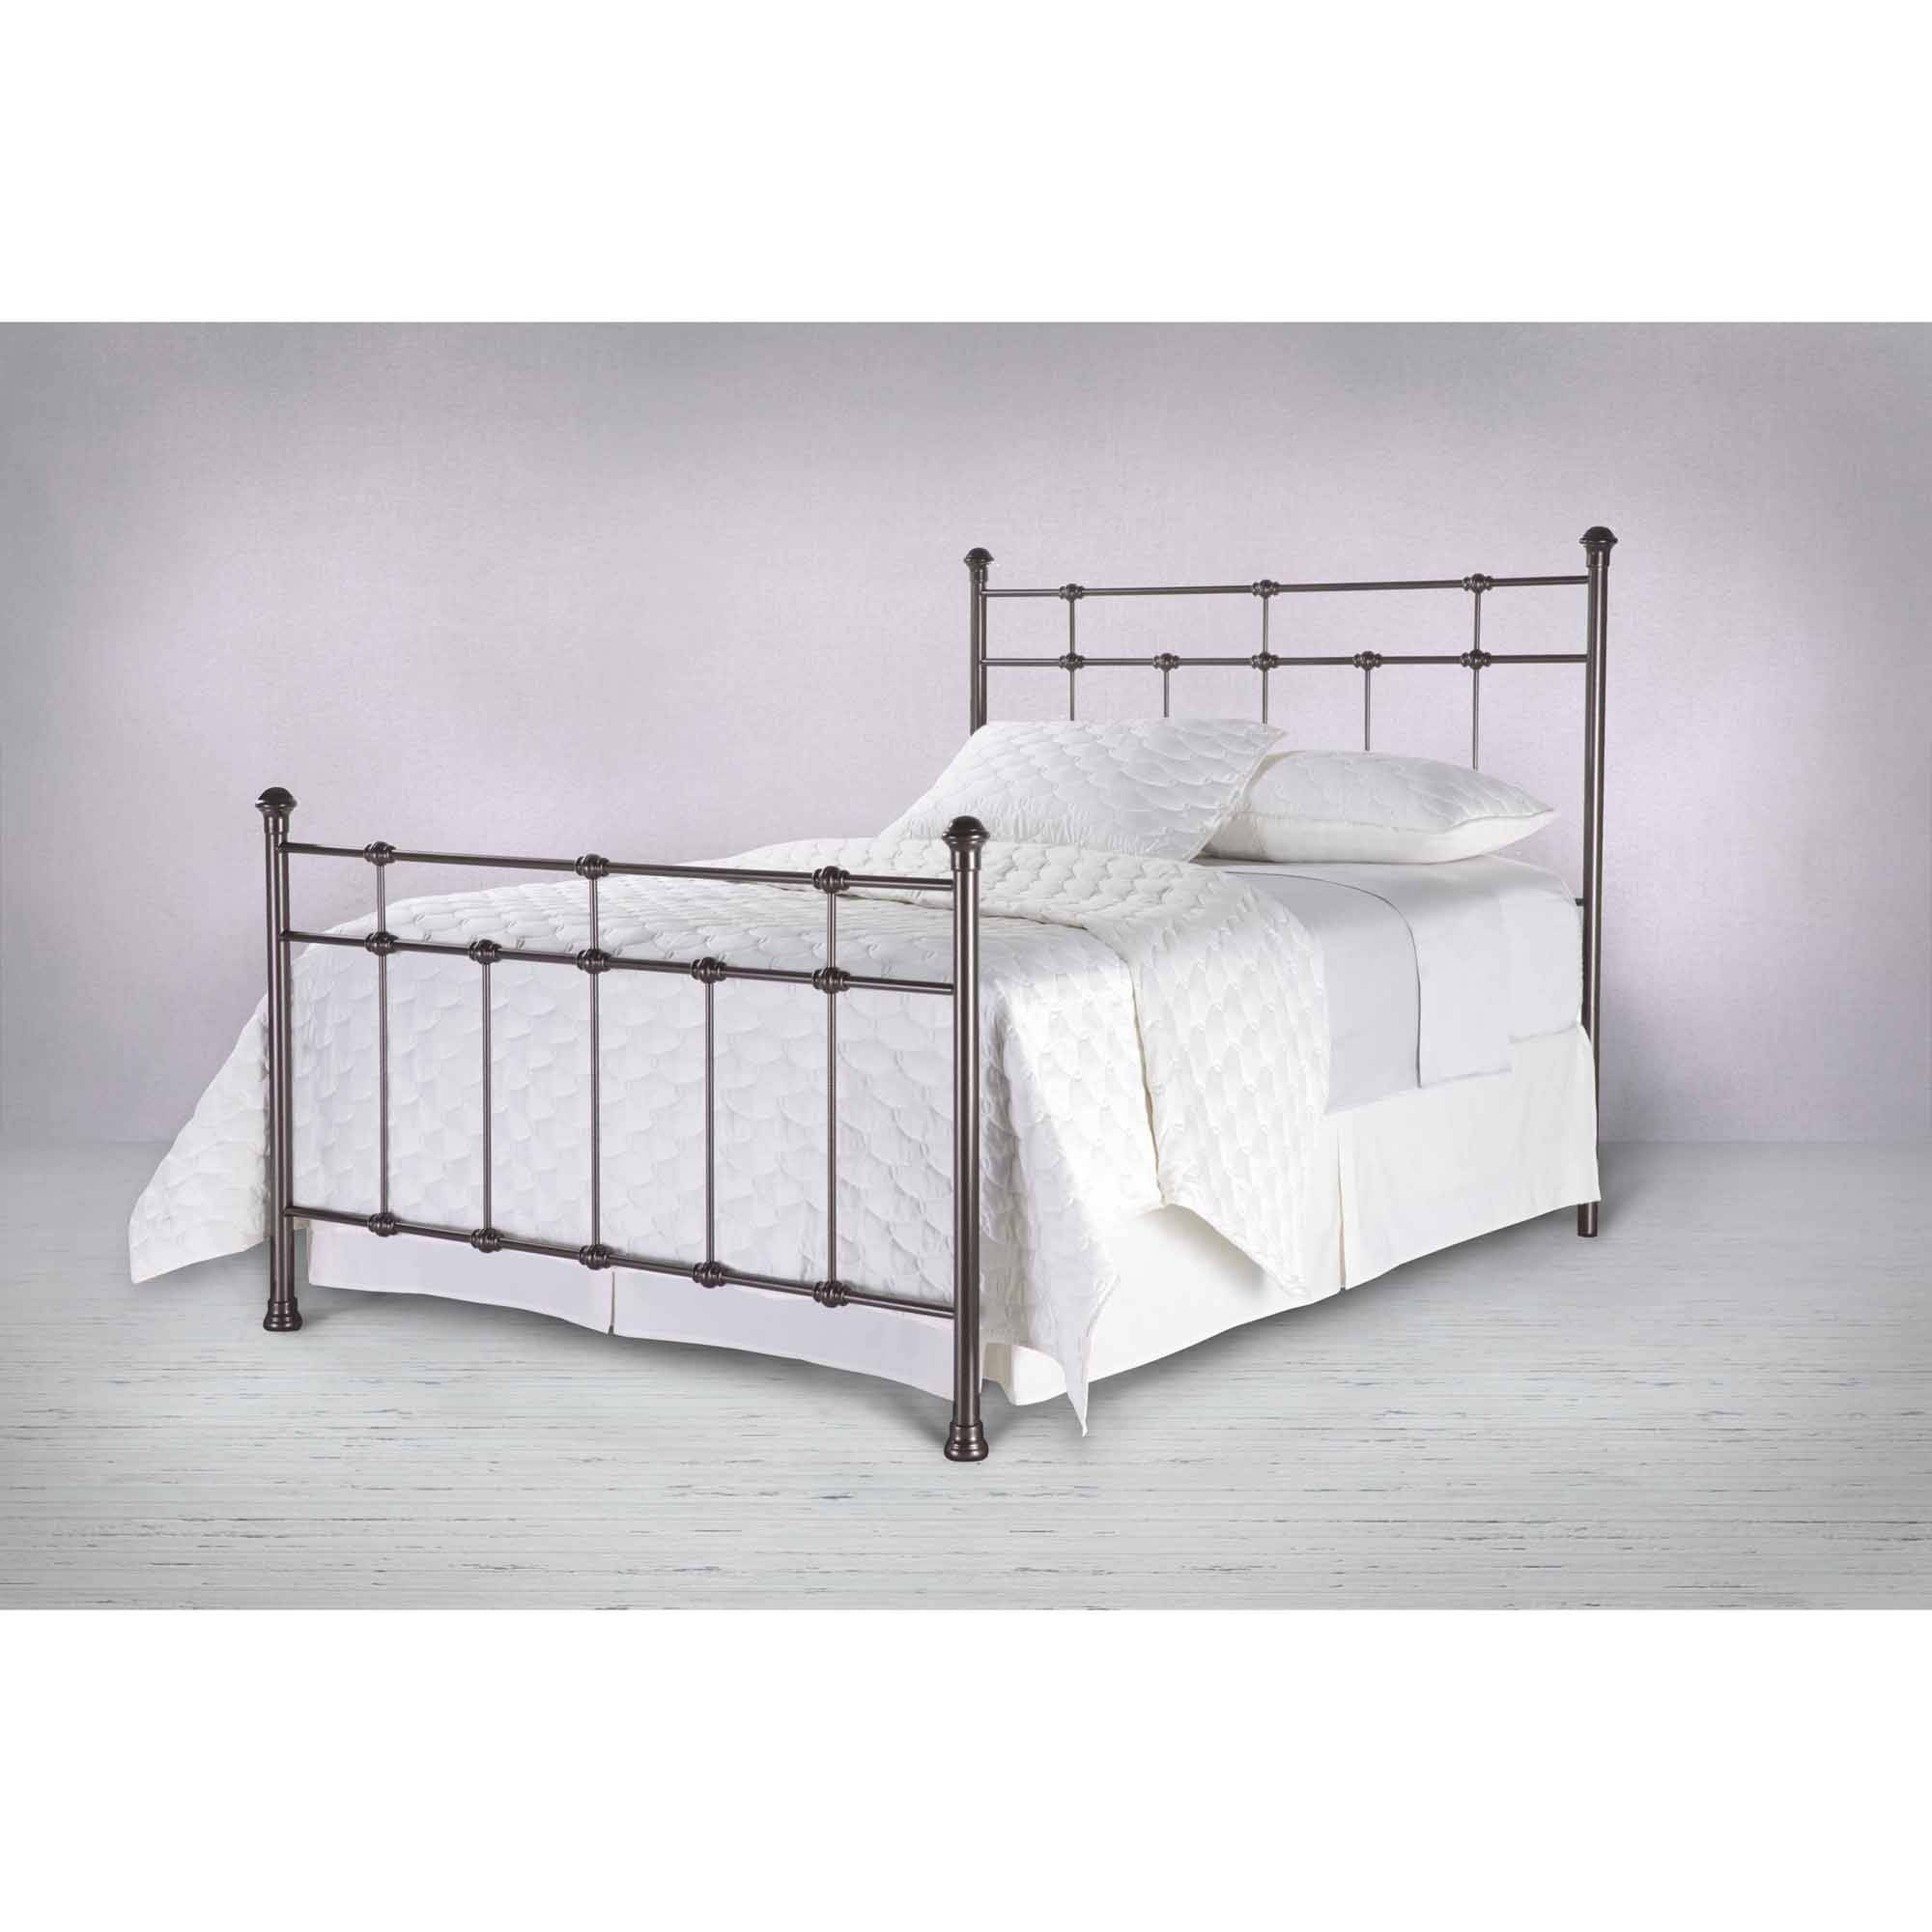 Metal Bed Headboards Dexter Metal Headboard Panel With Decorative Castings And Finial Posts Hammered Brown Finish Queen